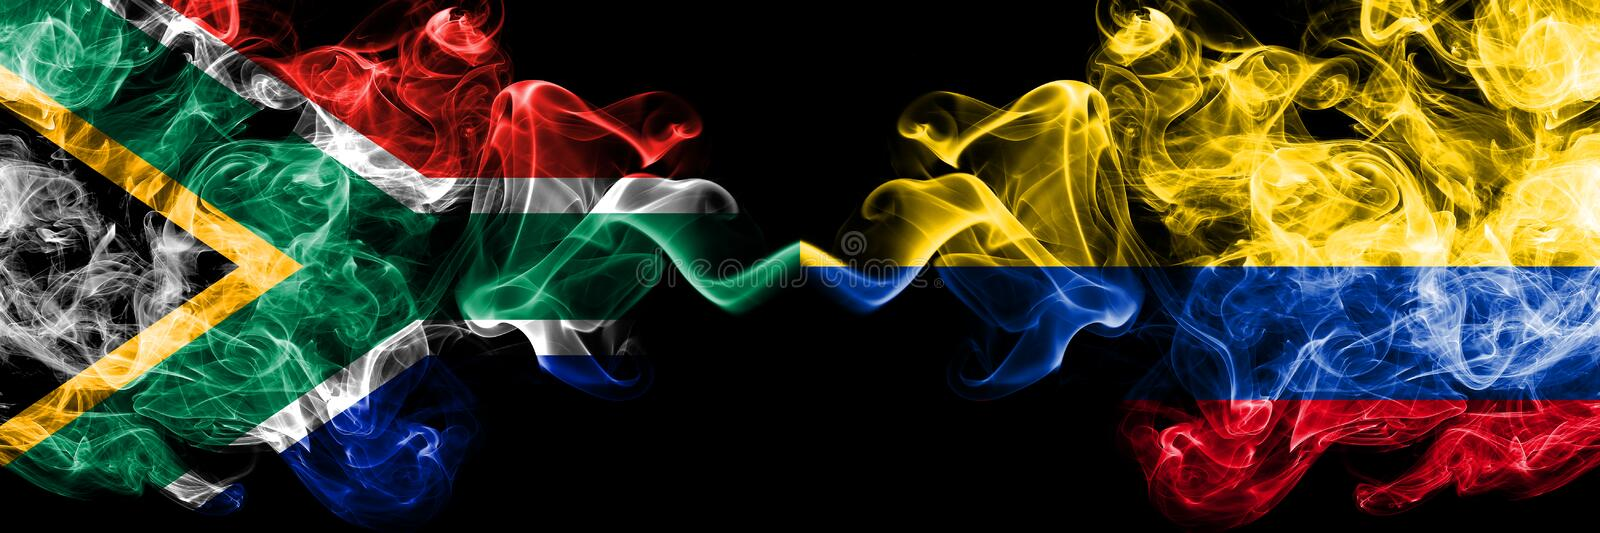 South Africa vs Colombia, Colombian smoky mystic flags placed side by side. Thick colored silky abstract smoke flags concept.  royalty free illustration